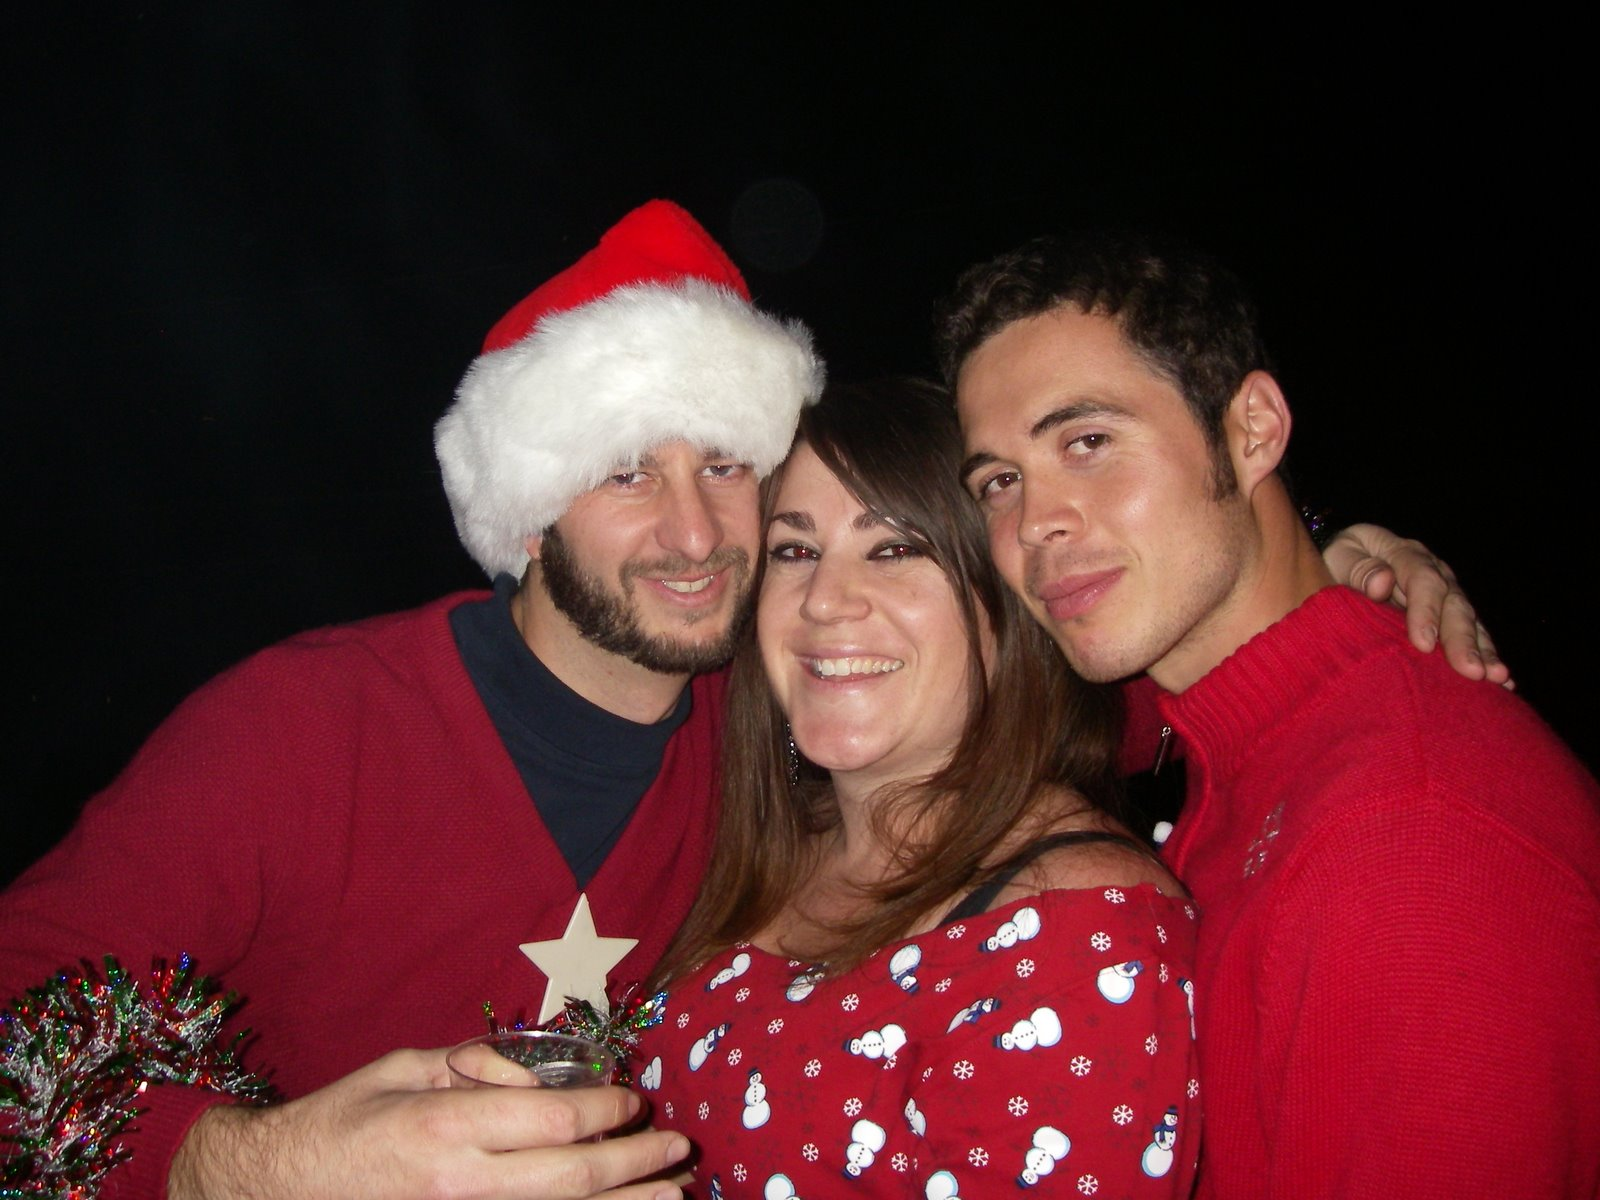 Bad sweater party 029.jpg